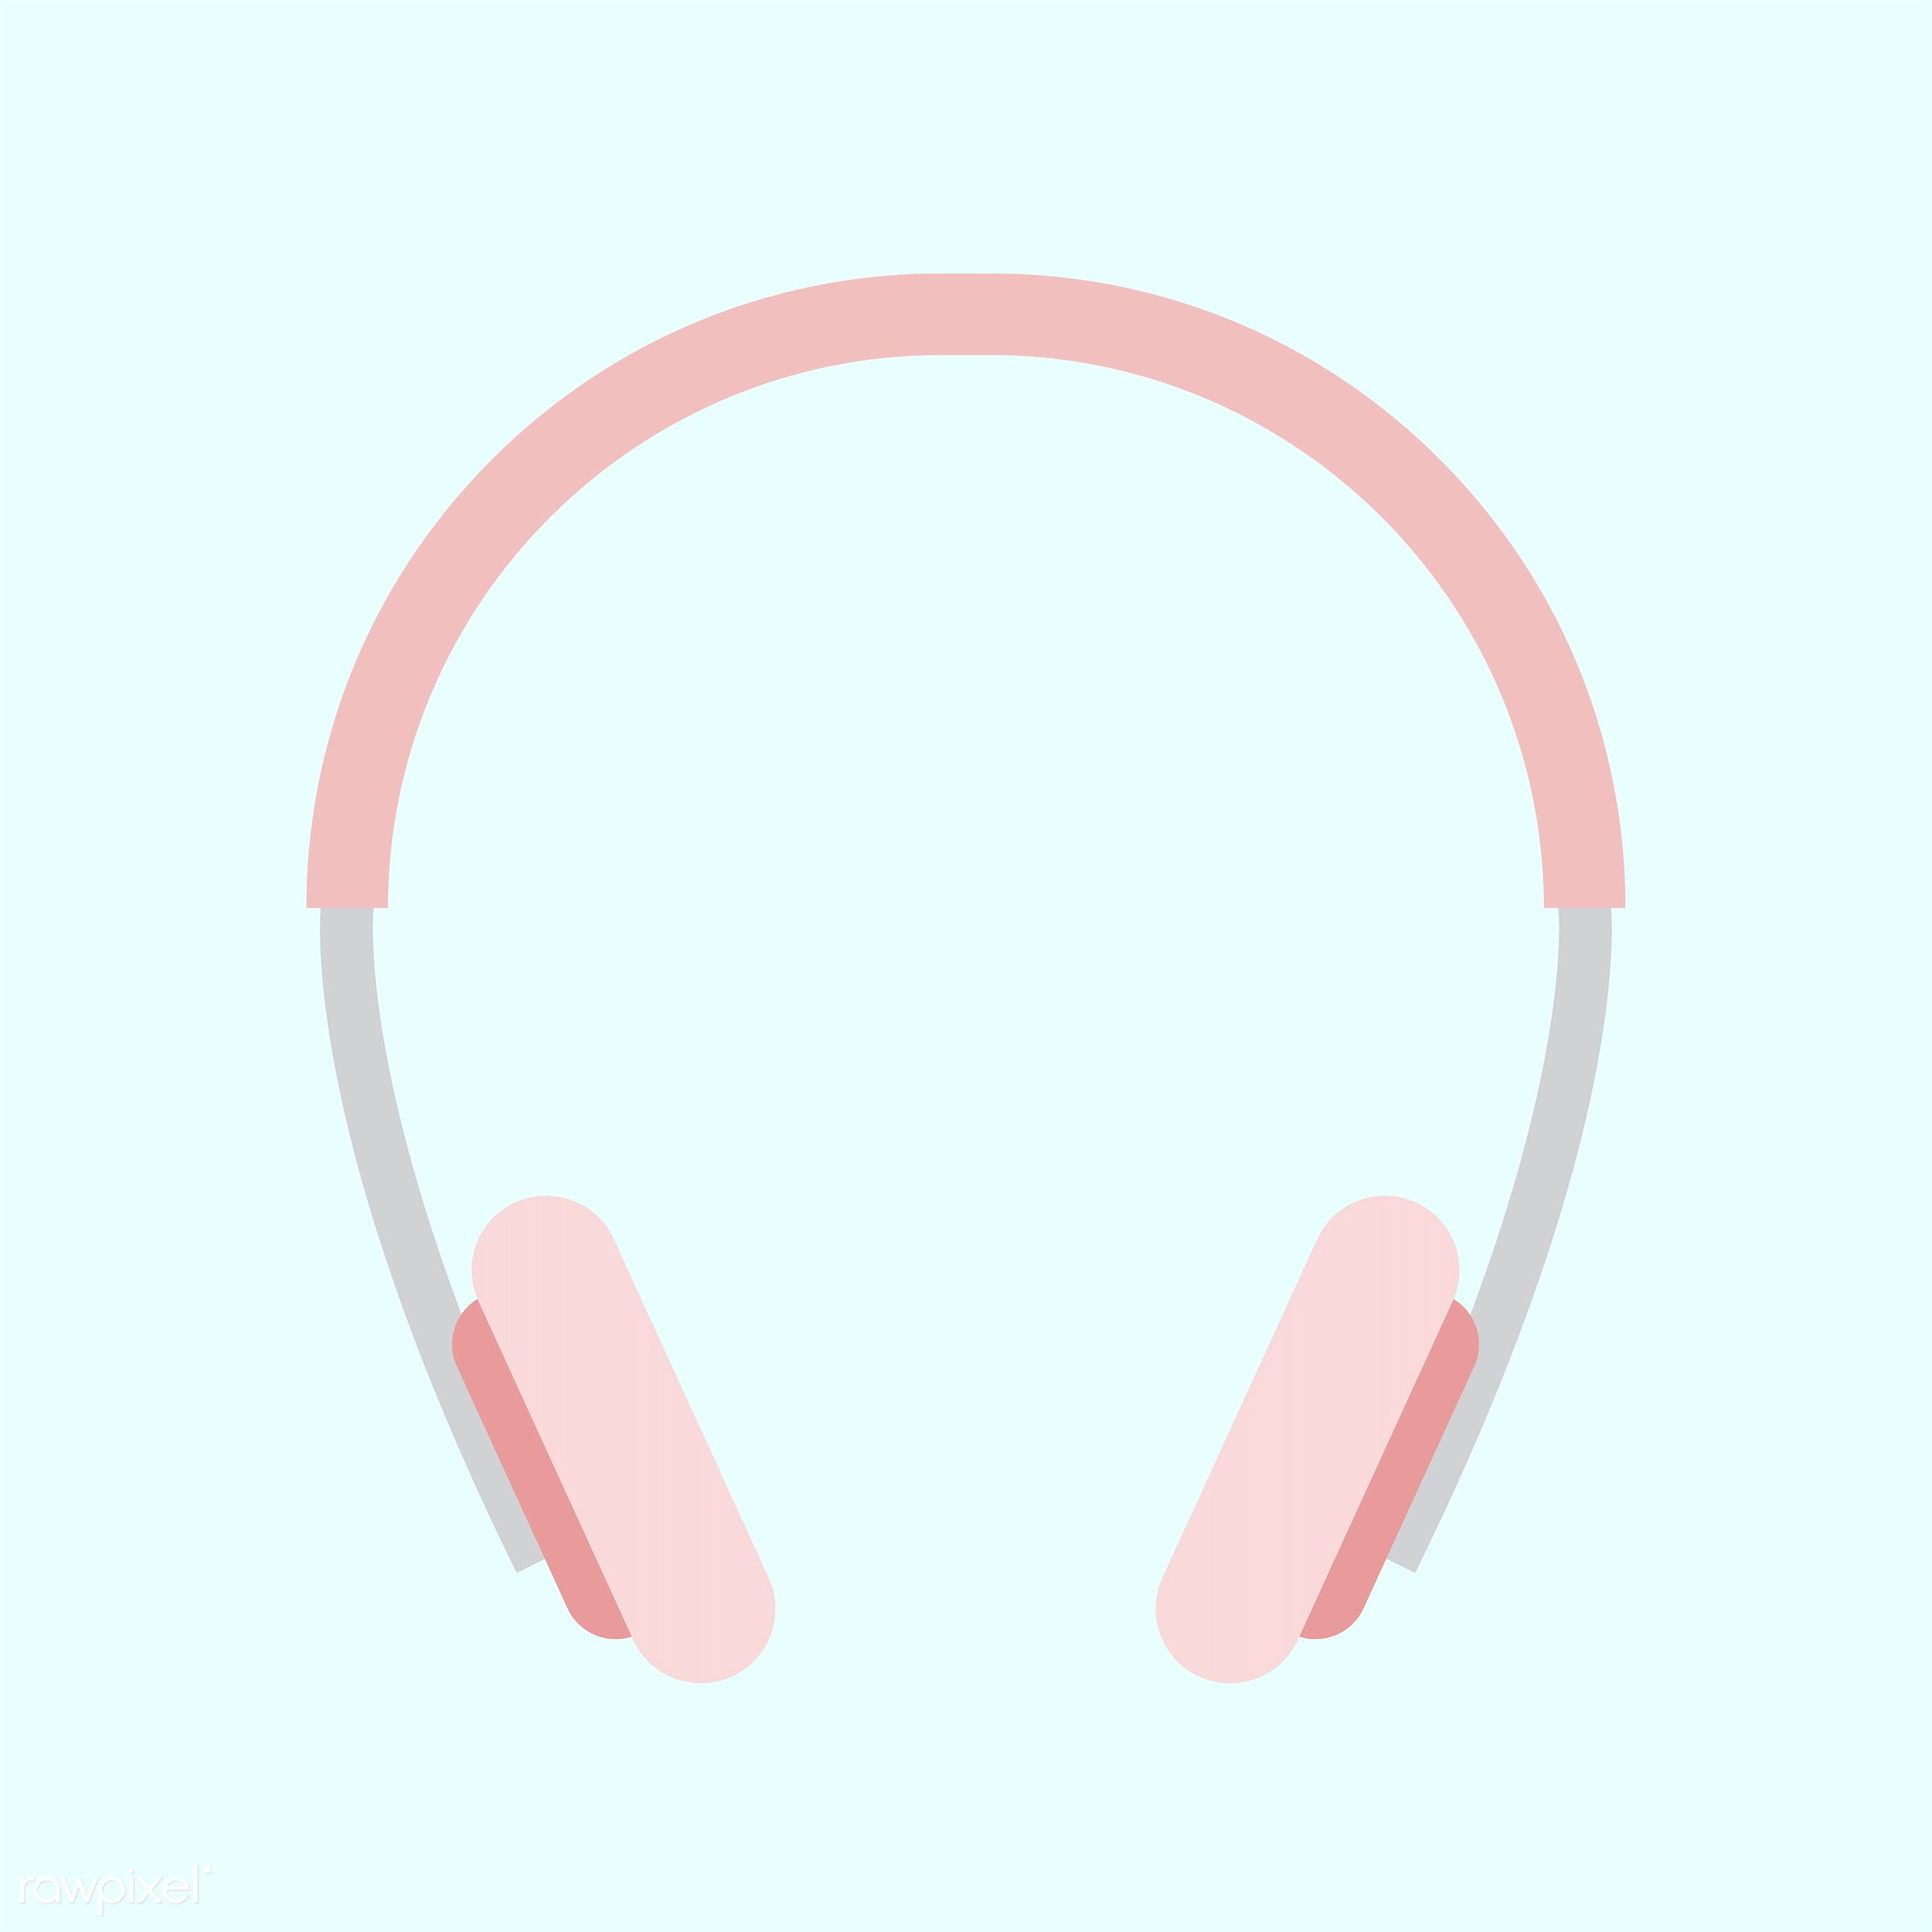 pastel, cute, girly, graphic, headphones, illustration, isolated, pink, sweet, vector